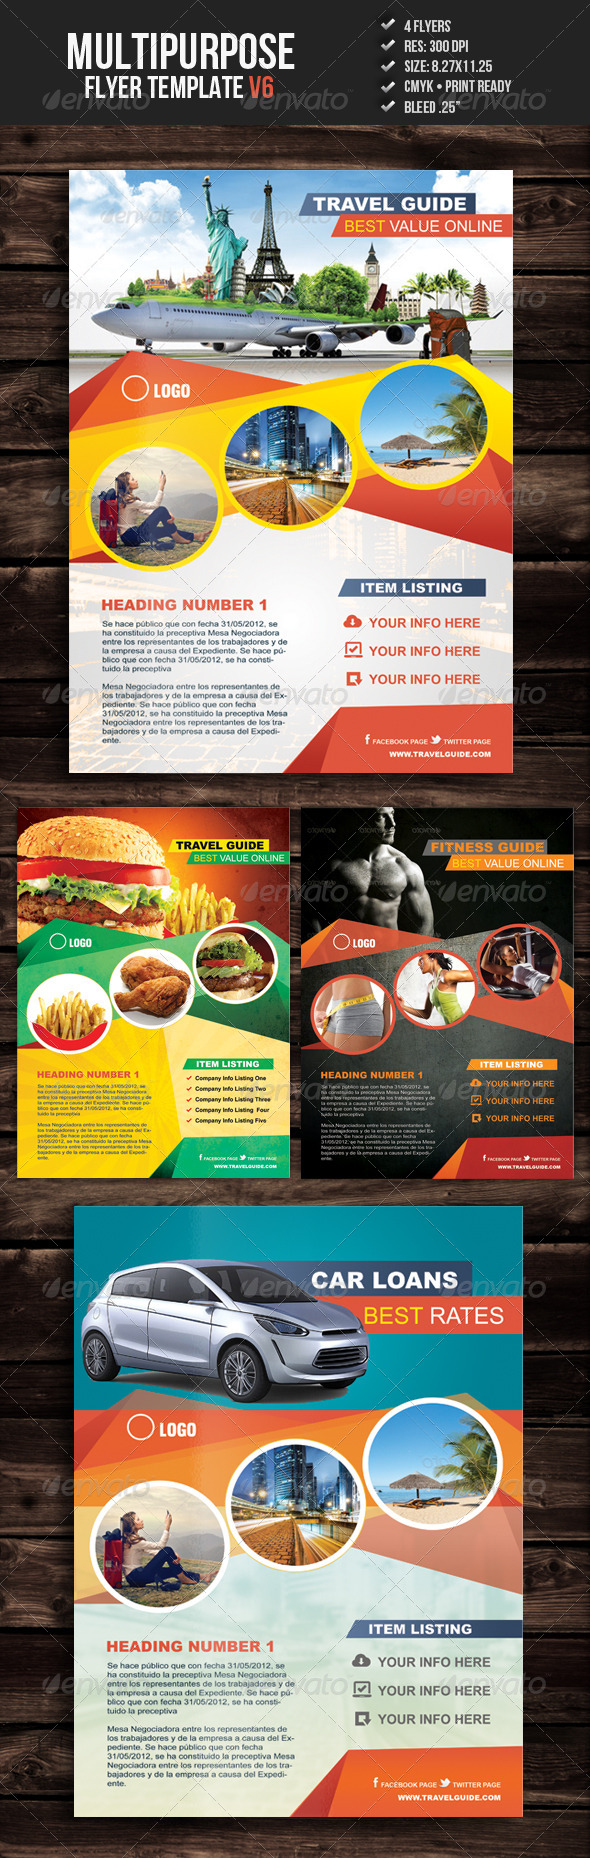 Multipurpose Flyer Template V6 - Corporate Flyers